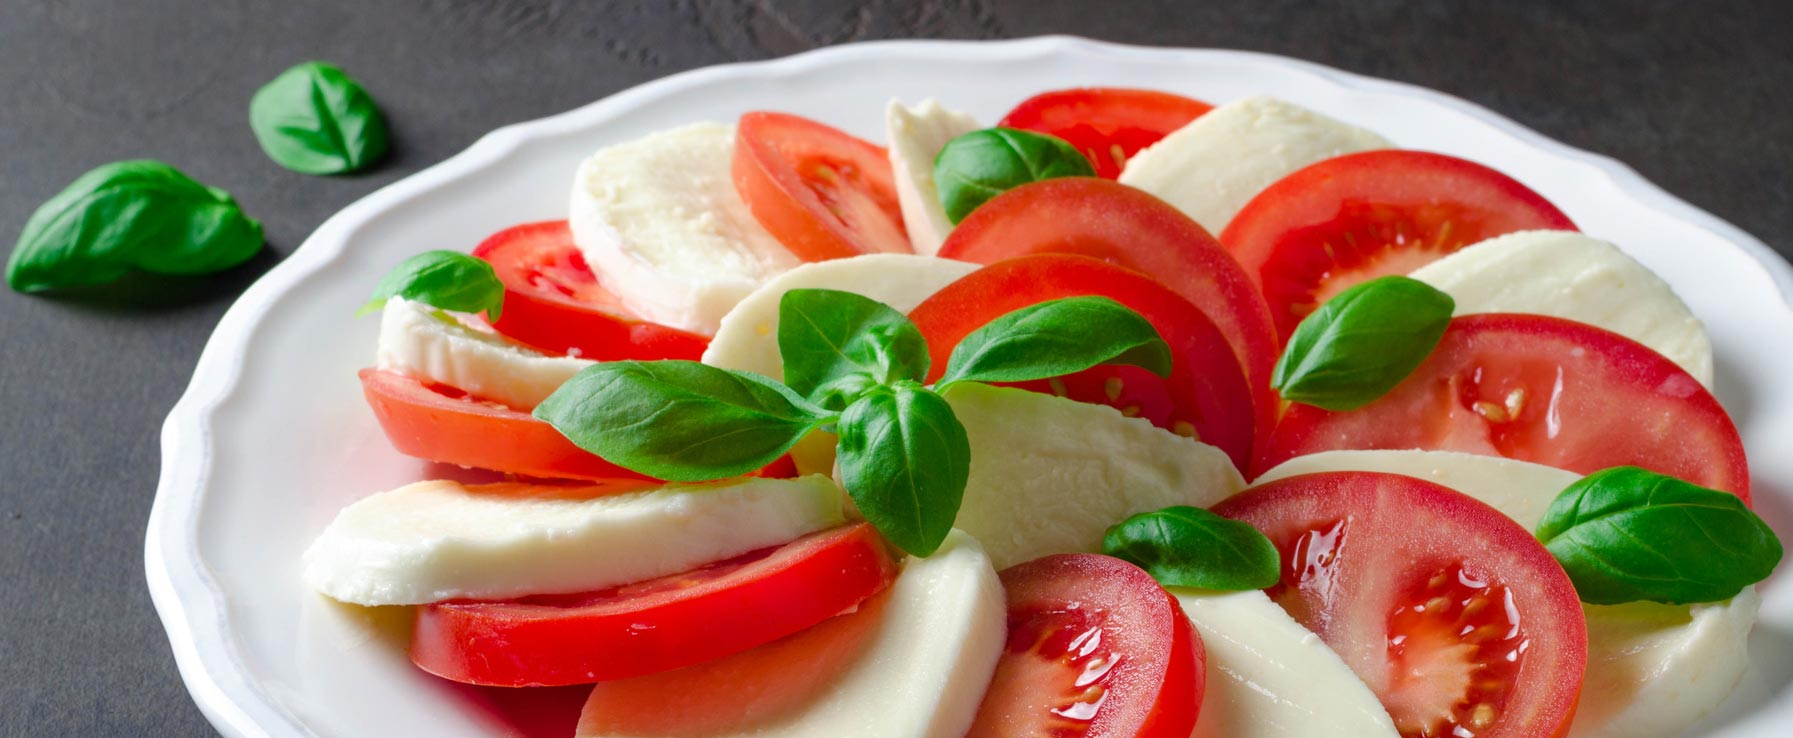 Santa Marta - good Mozzarella cheese for every blessed day